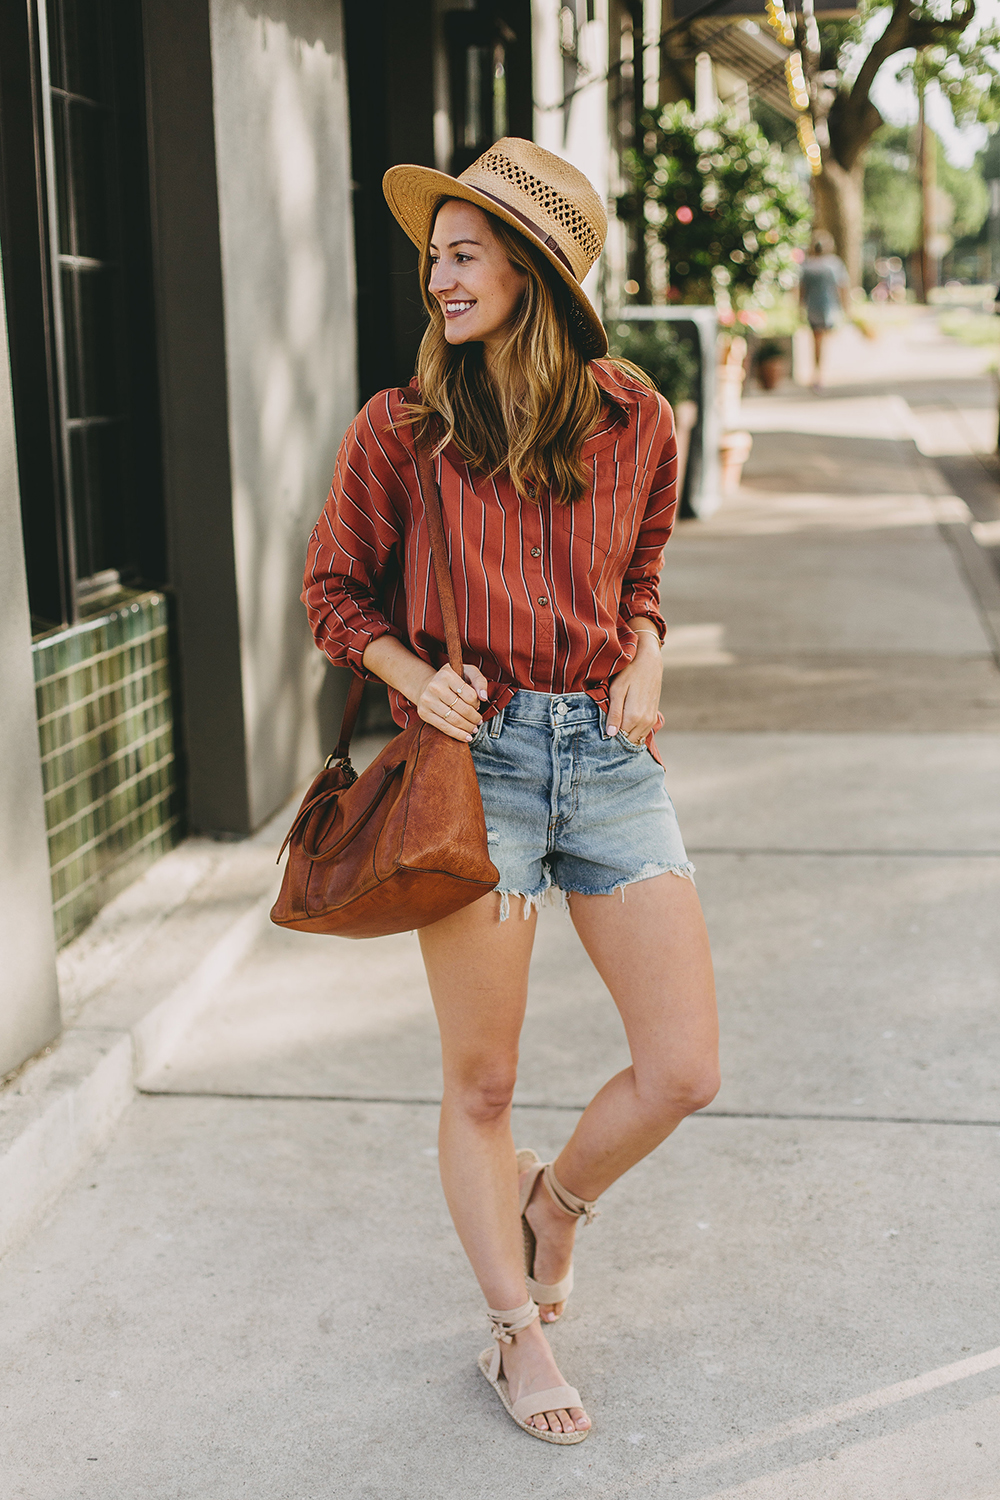 livvyland-blog-olivia-watson-austin-texas-fashion-style-blogger-urban-outfitters-levis-denim-wedgie-short-out-the-blue-brixton-straw-case-fedora-7